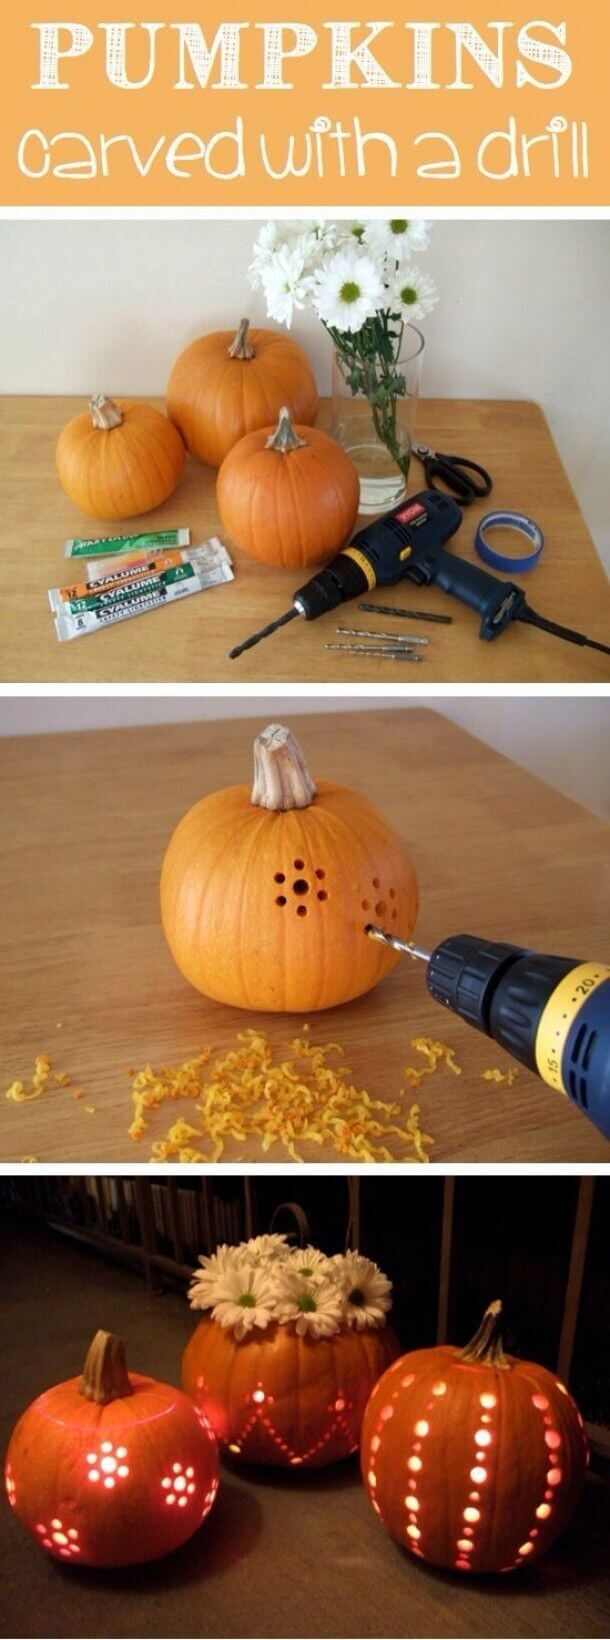 Carve Your Pumpkins With A Drill